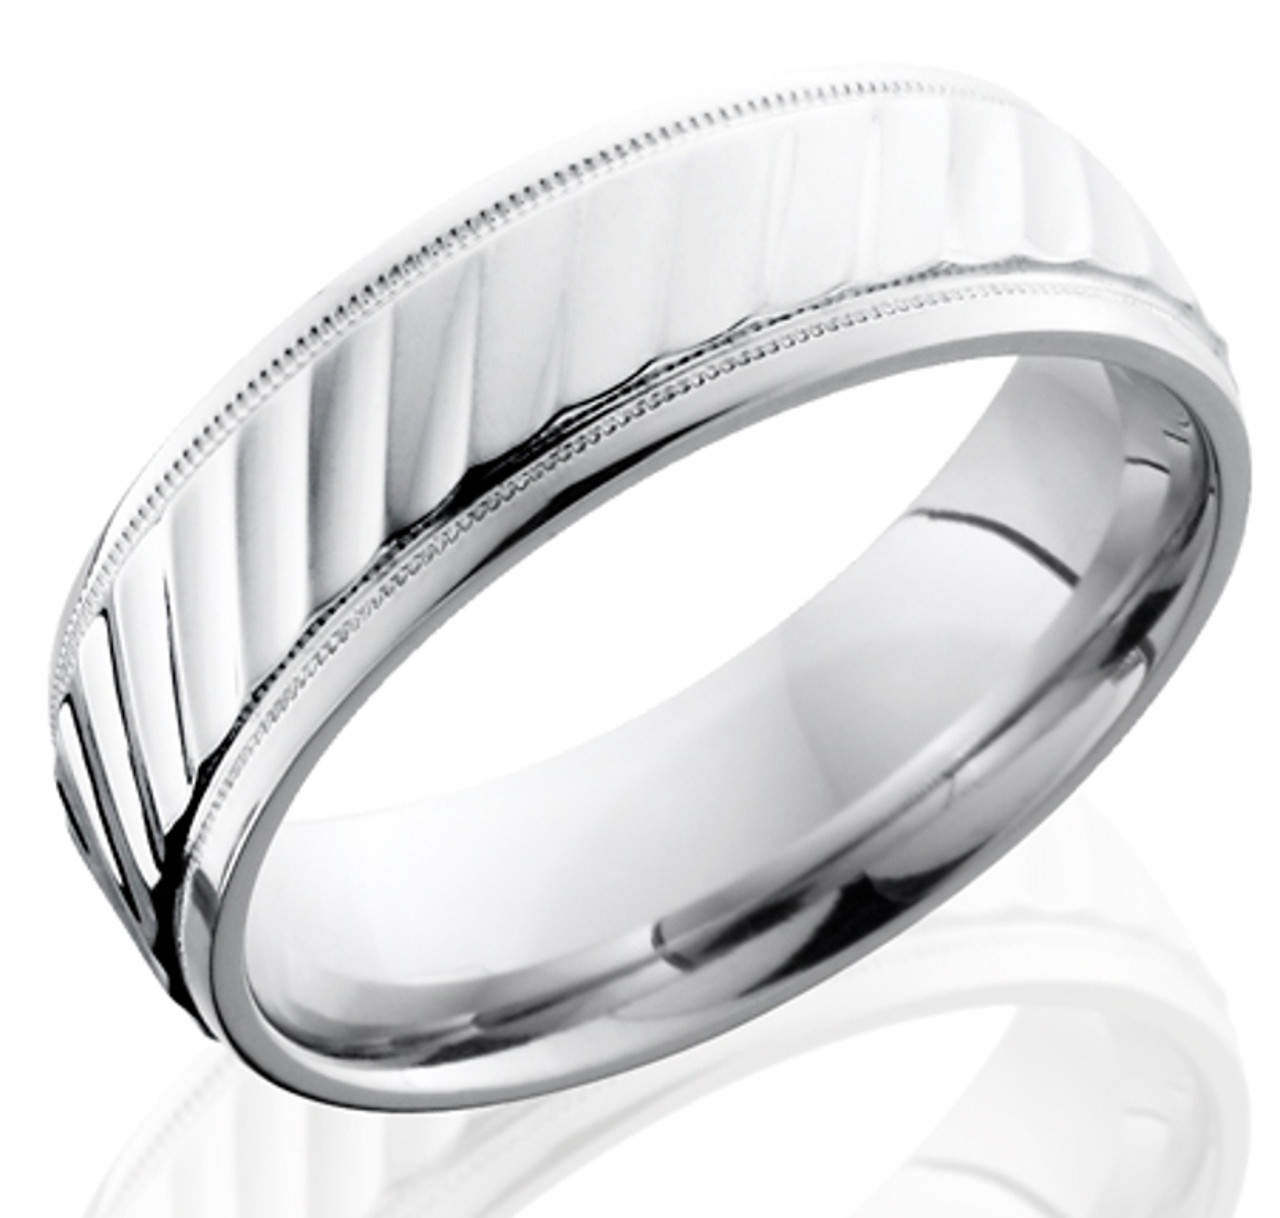 Men S Milled Edge Wave Texture Cobalt Chrome Ring